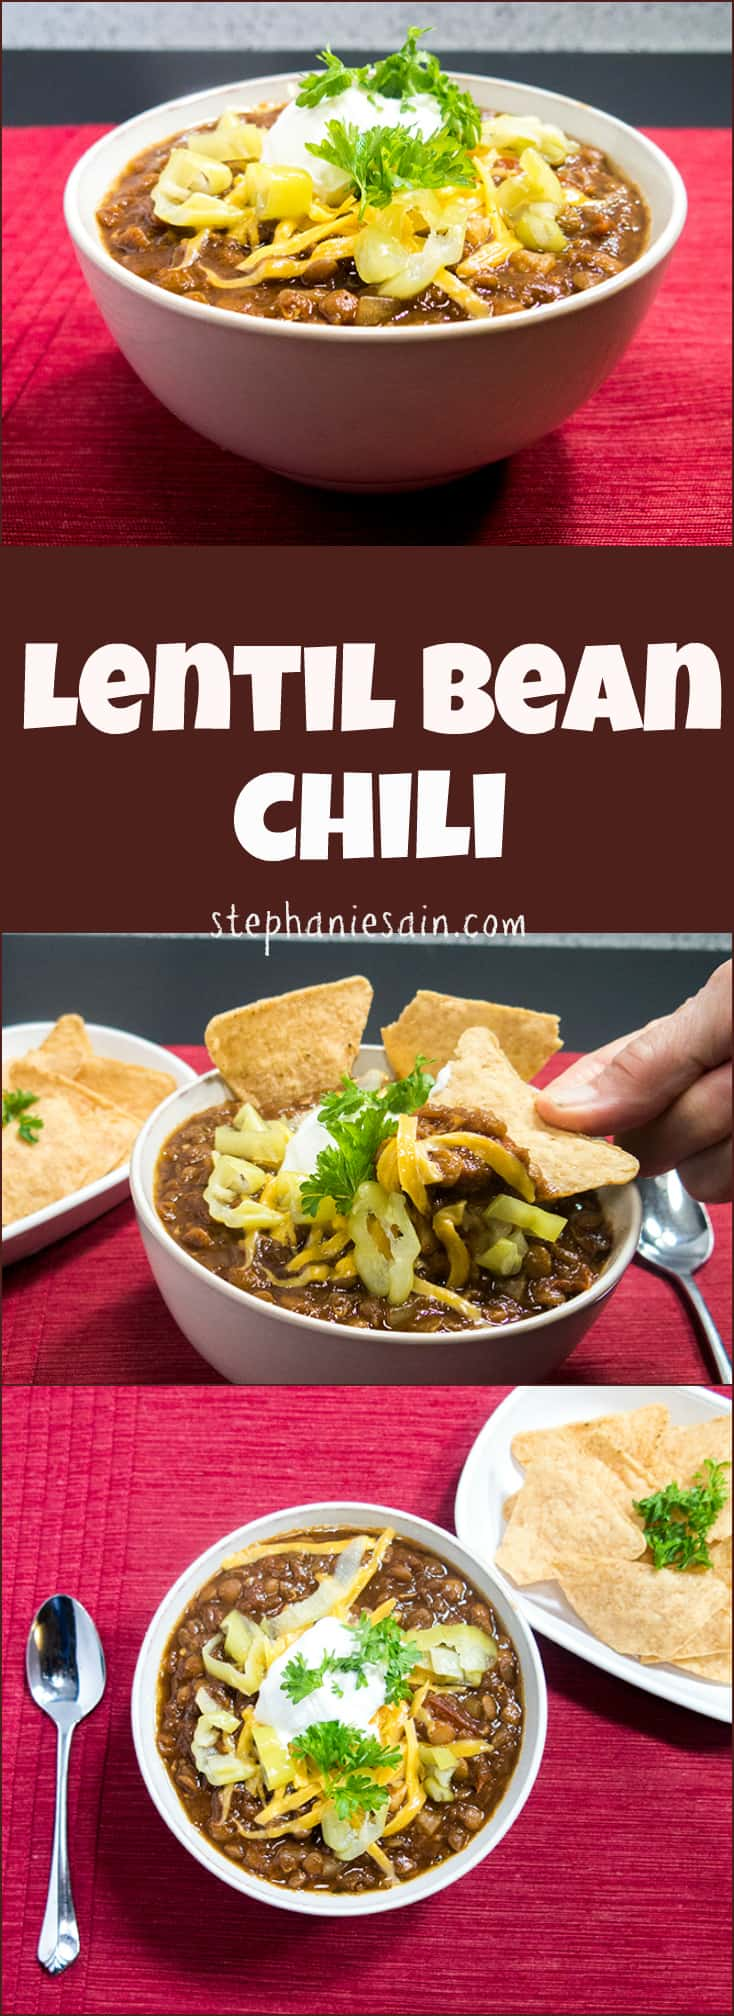 Lentil Bean Chili is an easy to prepare Chili perfect for all your upcoming fall days. Great with all your favorite toppings. Vegetarian, Vegan, Gluten Free.